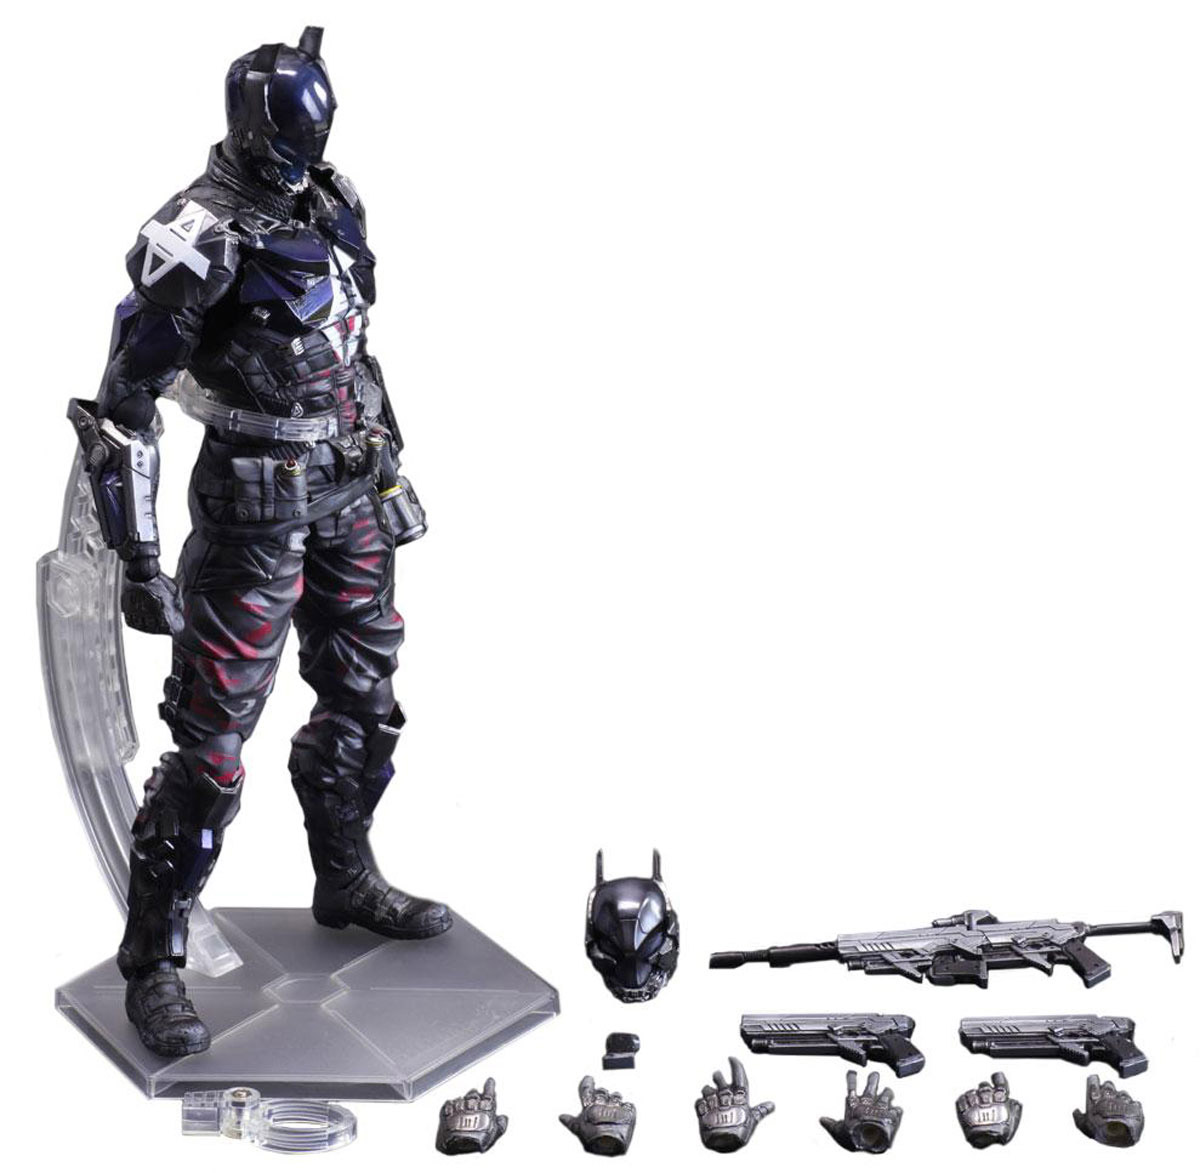 Batman Arkham Knight. Фигурка Play Arts Kai Arkham Knight 27 см halo 5 guardians фигурка play arts kai spartan locke 27 см